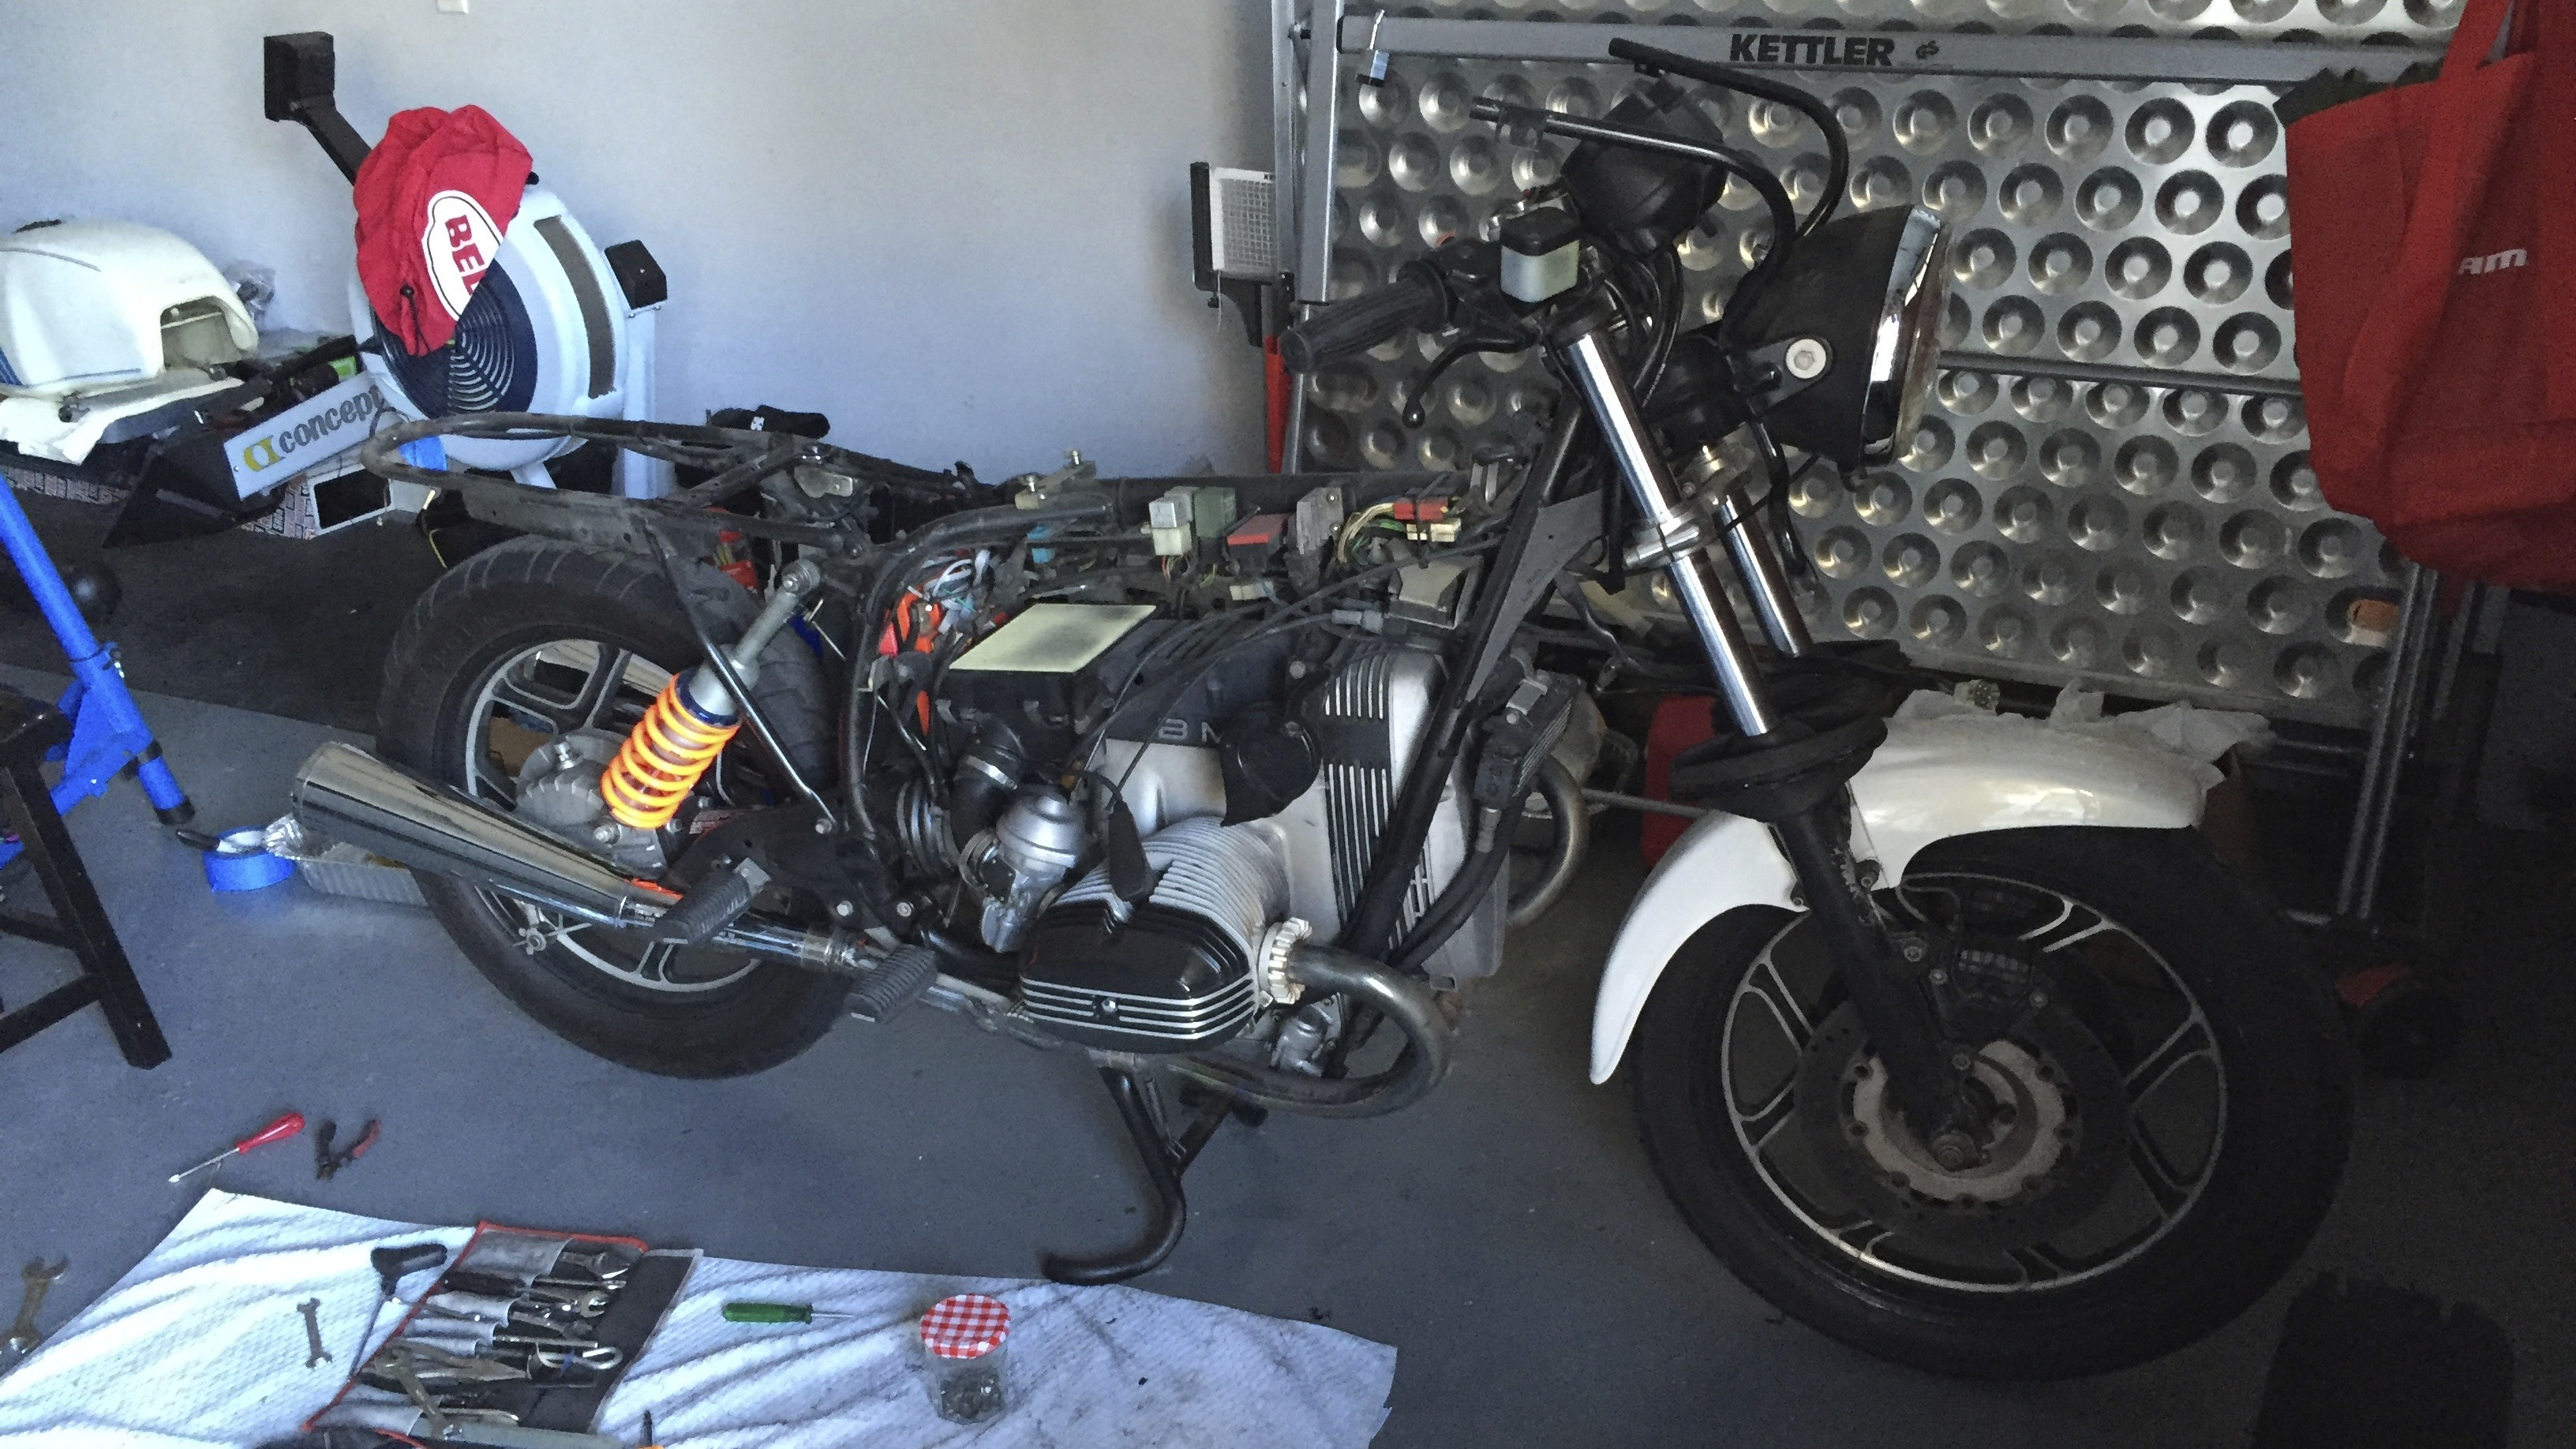 BMW R100 RS Cafe Racer by Troydon at Oshmo